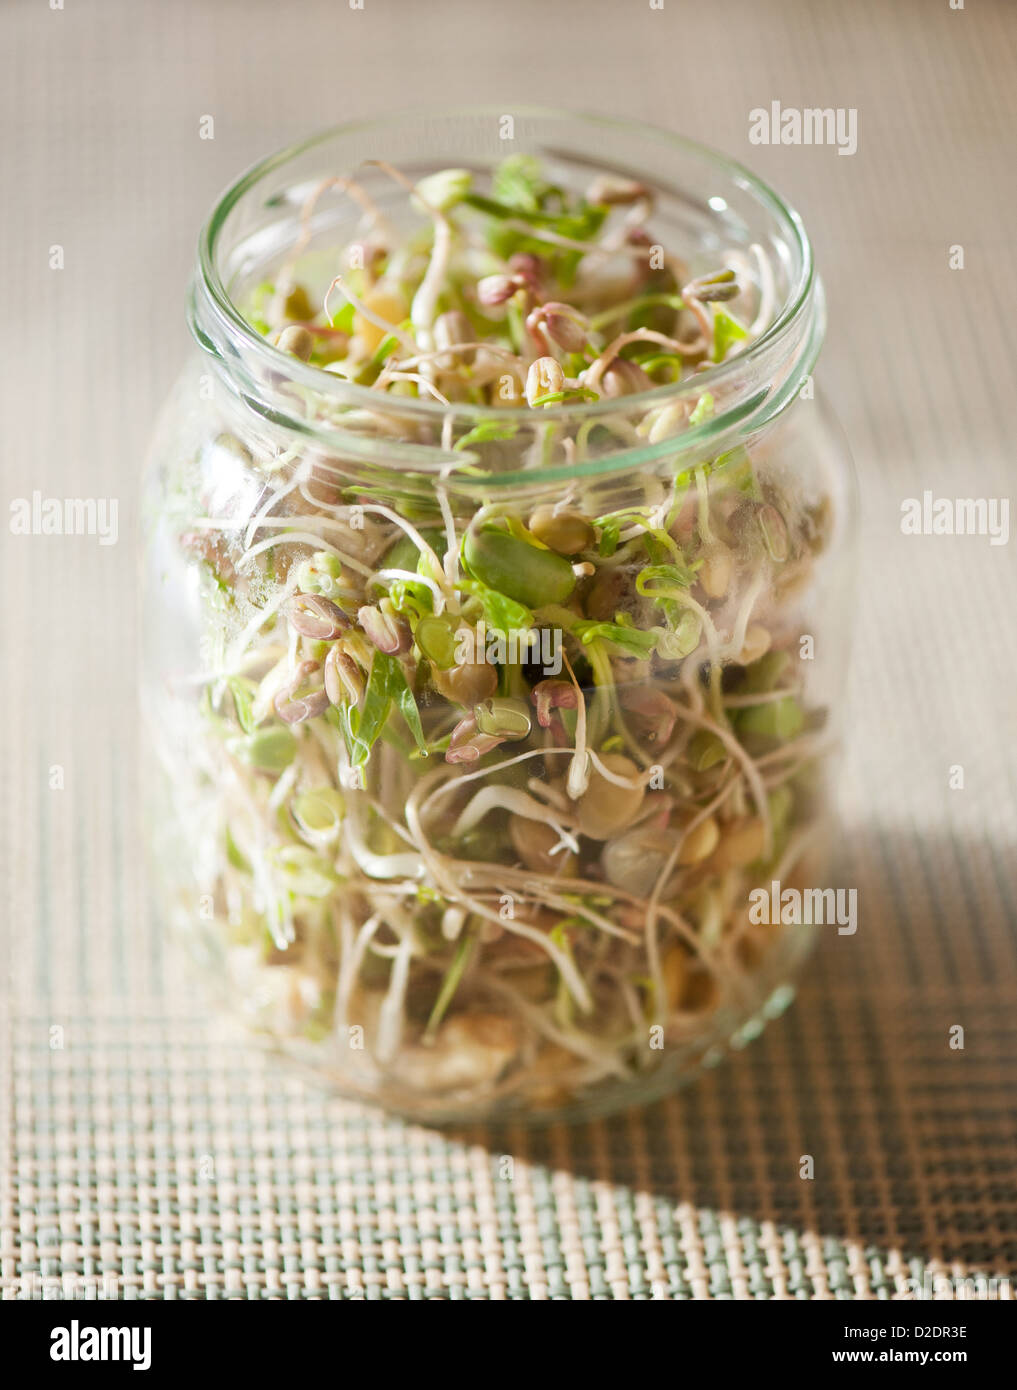 Many cereal sprouts growing in glass jar - Stock Image